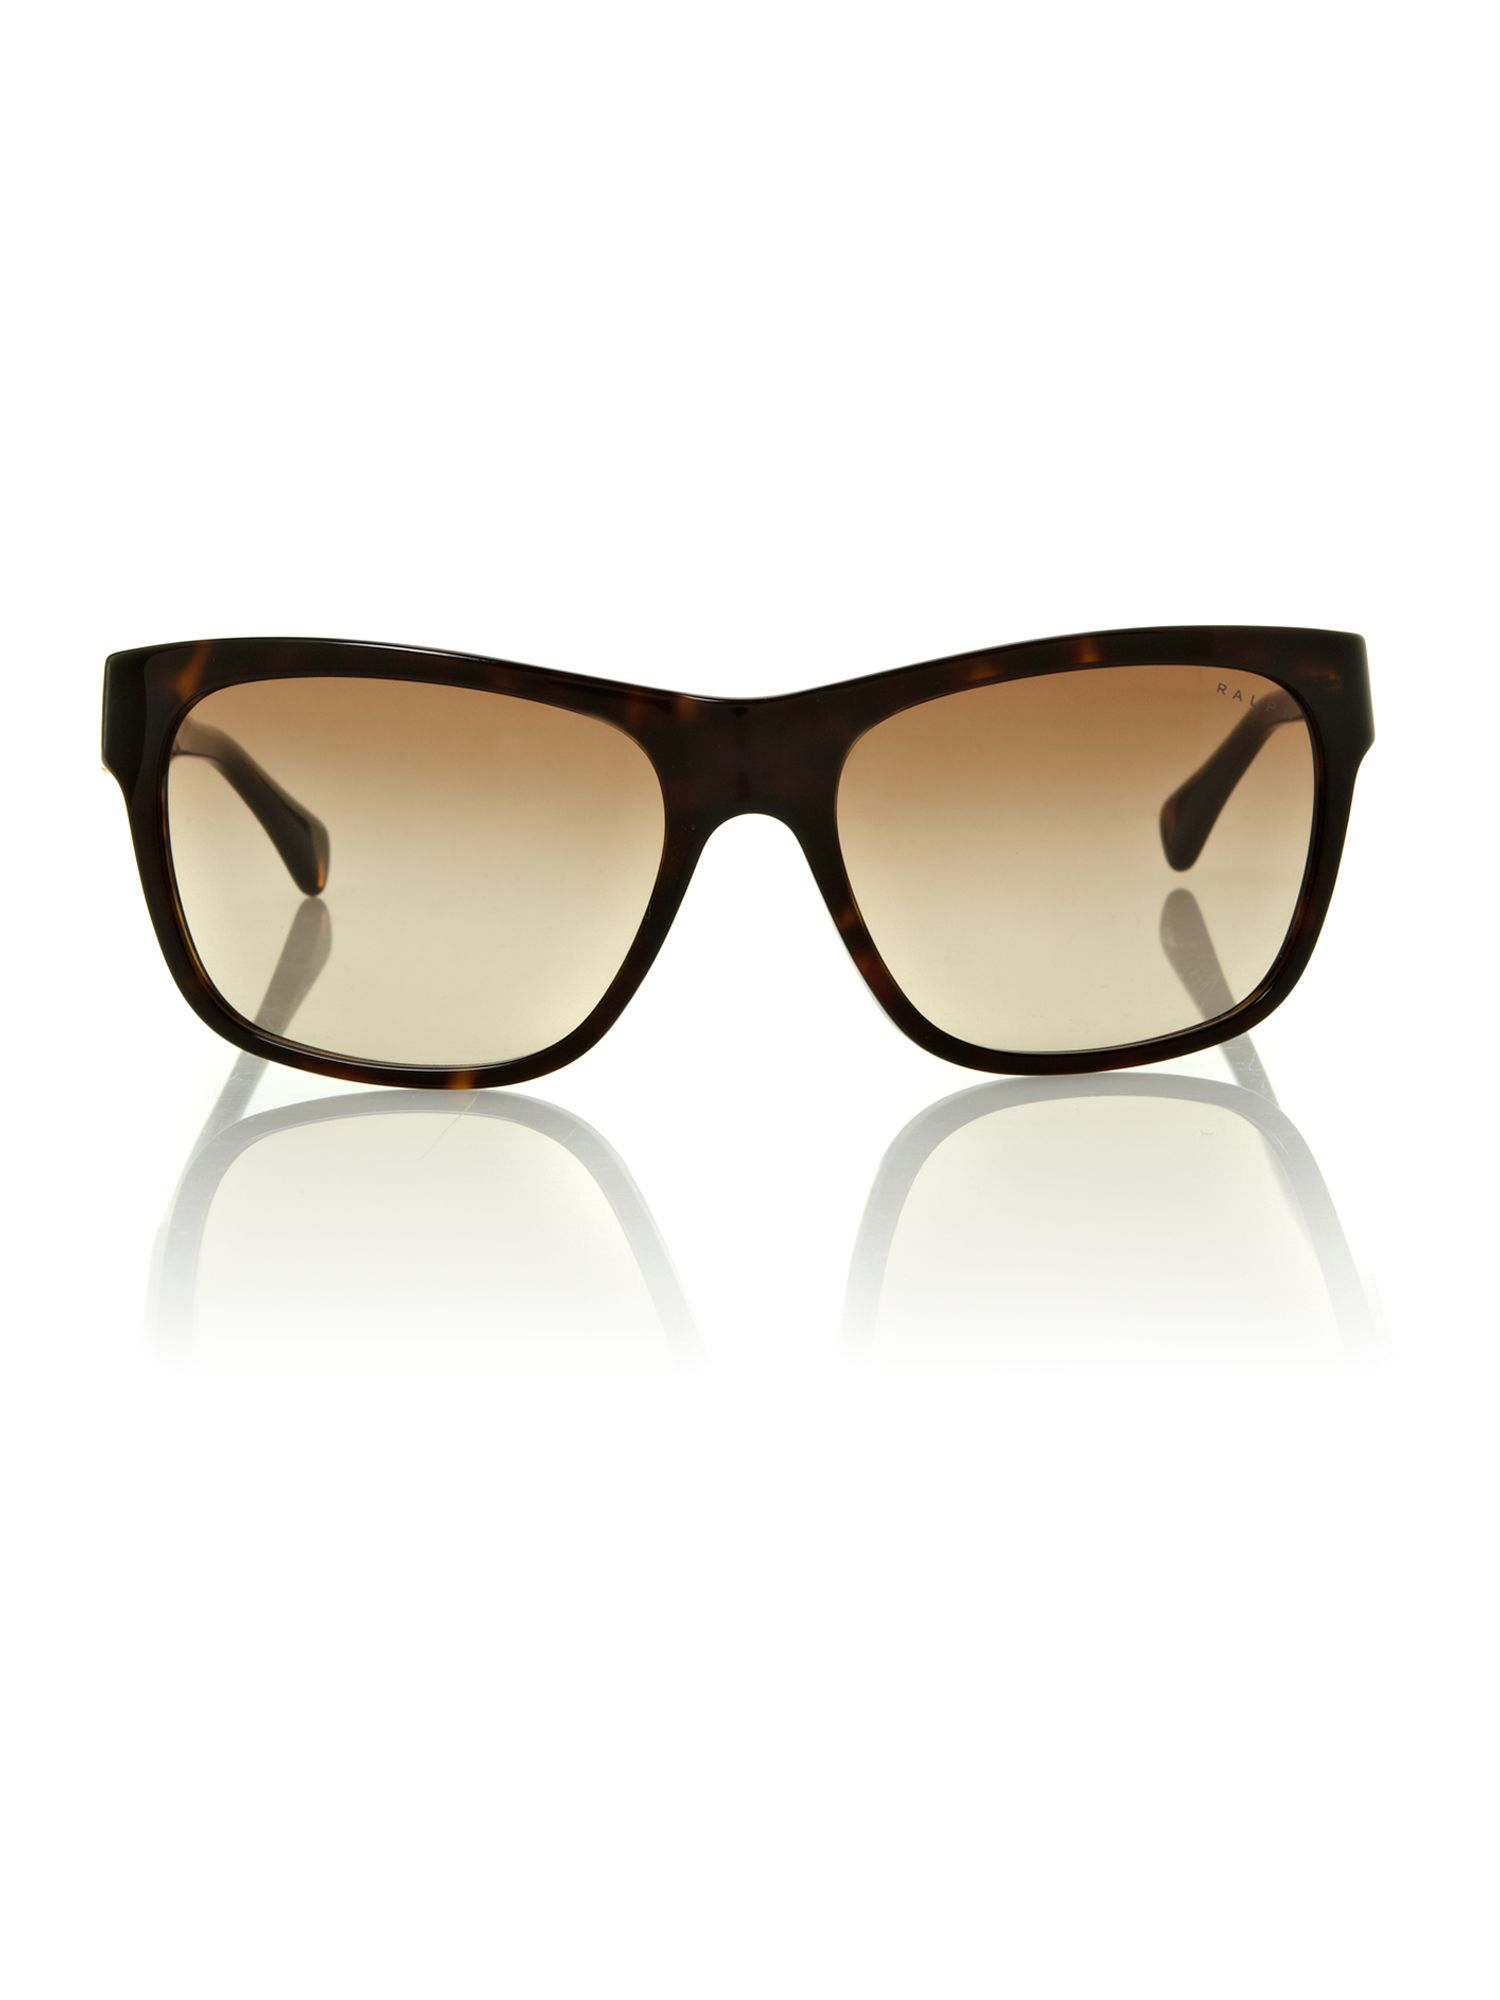 Ladies RA5164 essential sunglasses